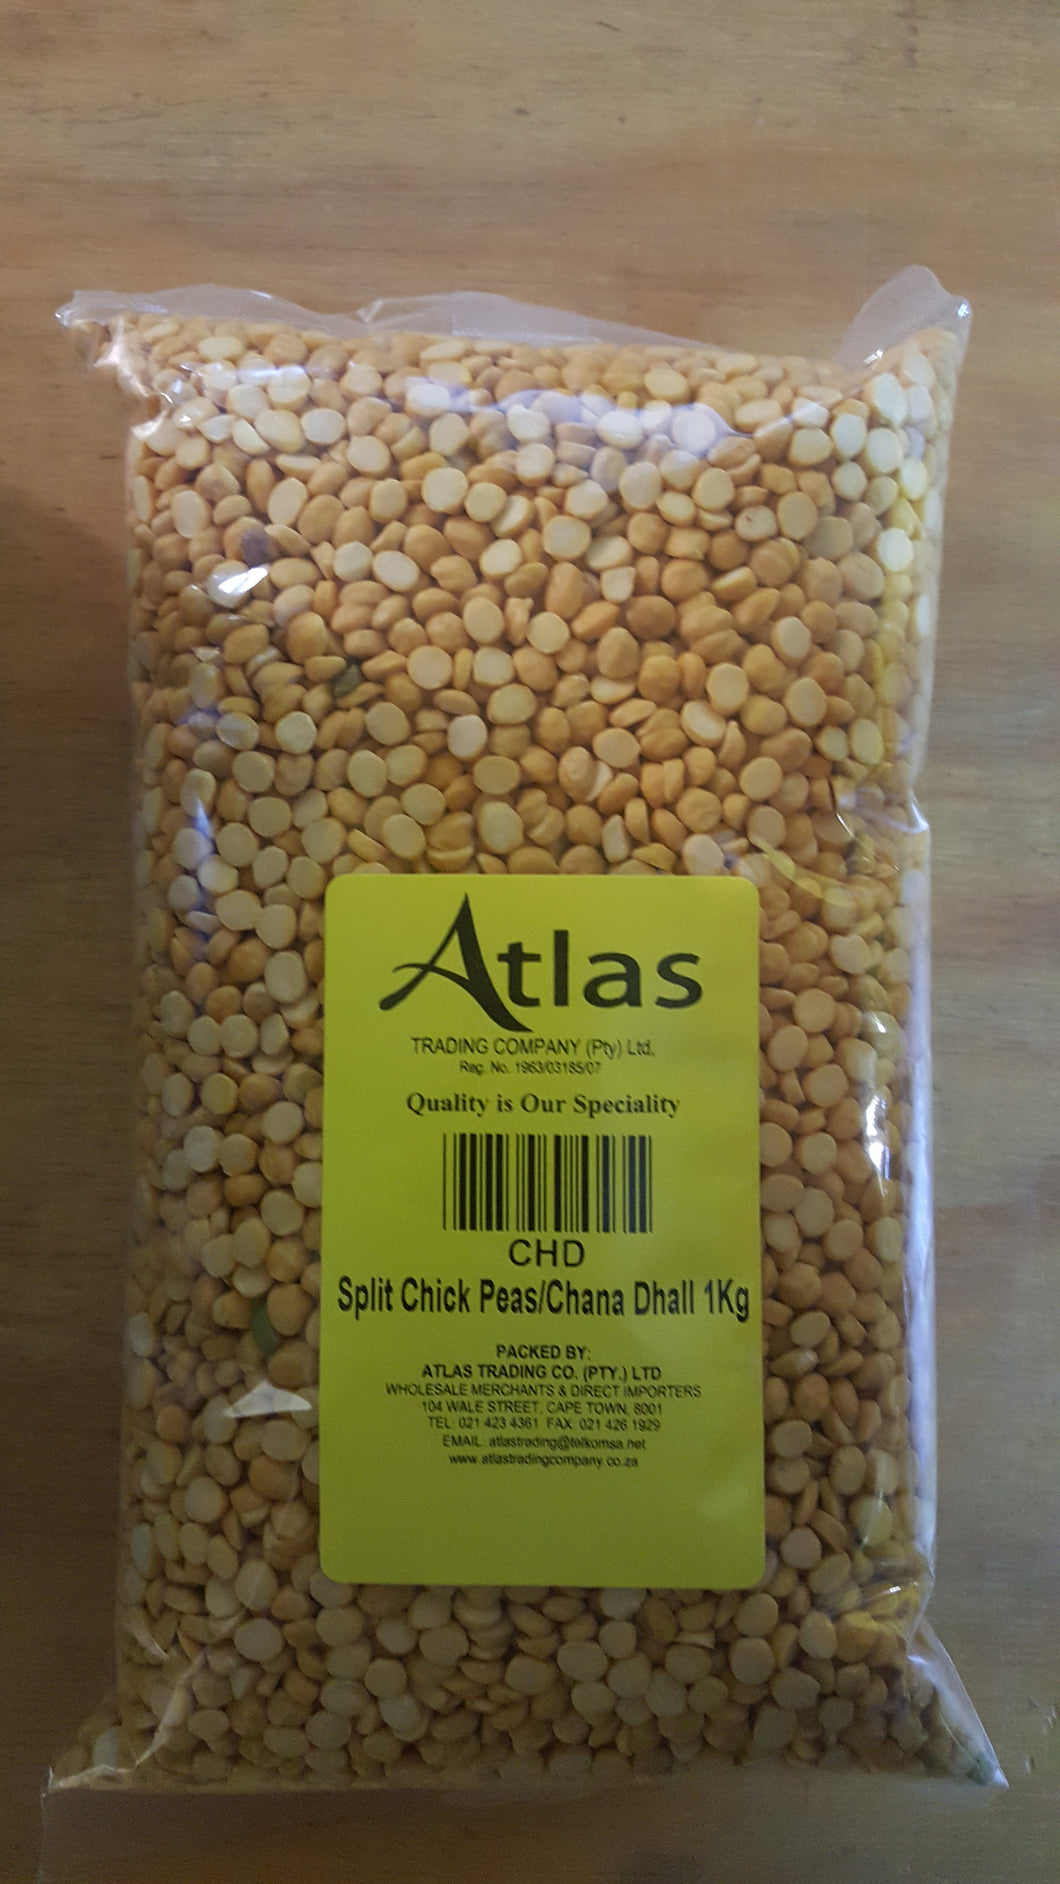 Chana Dhal/Split Chick Peas